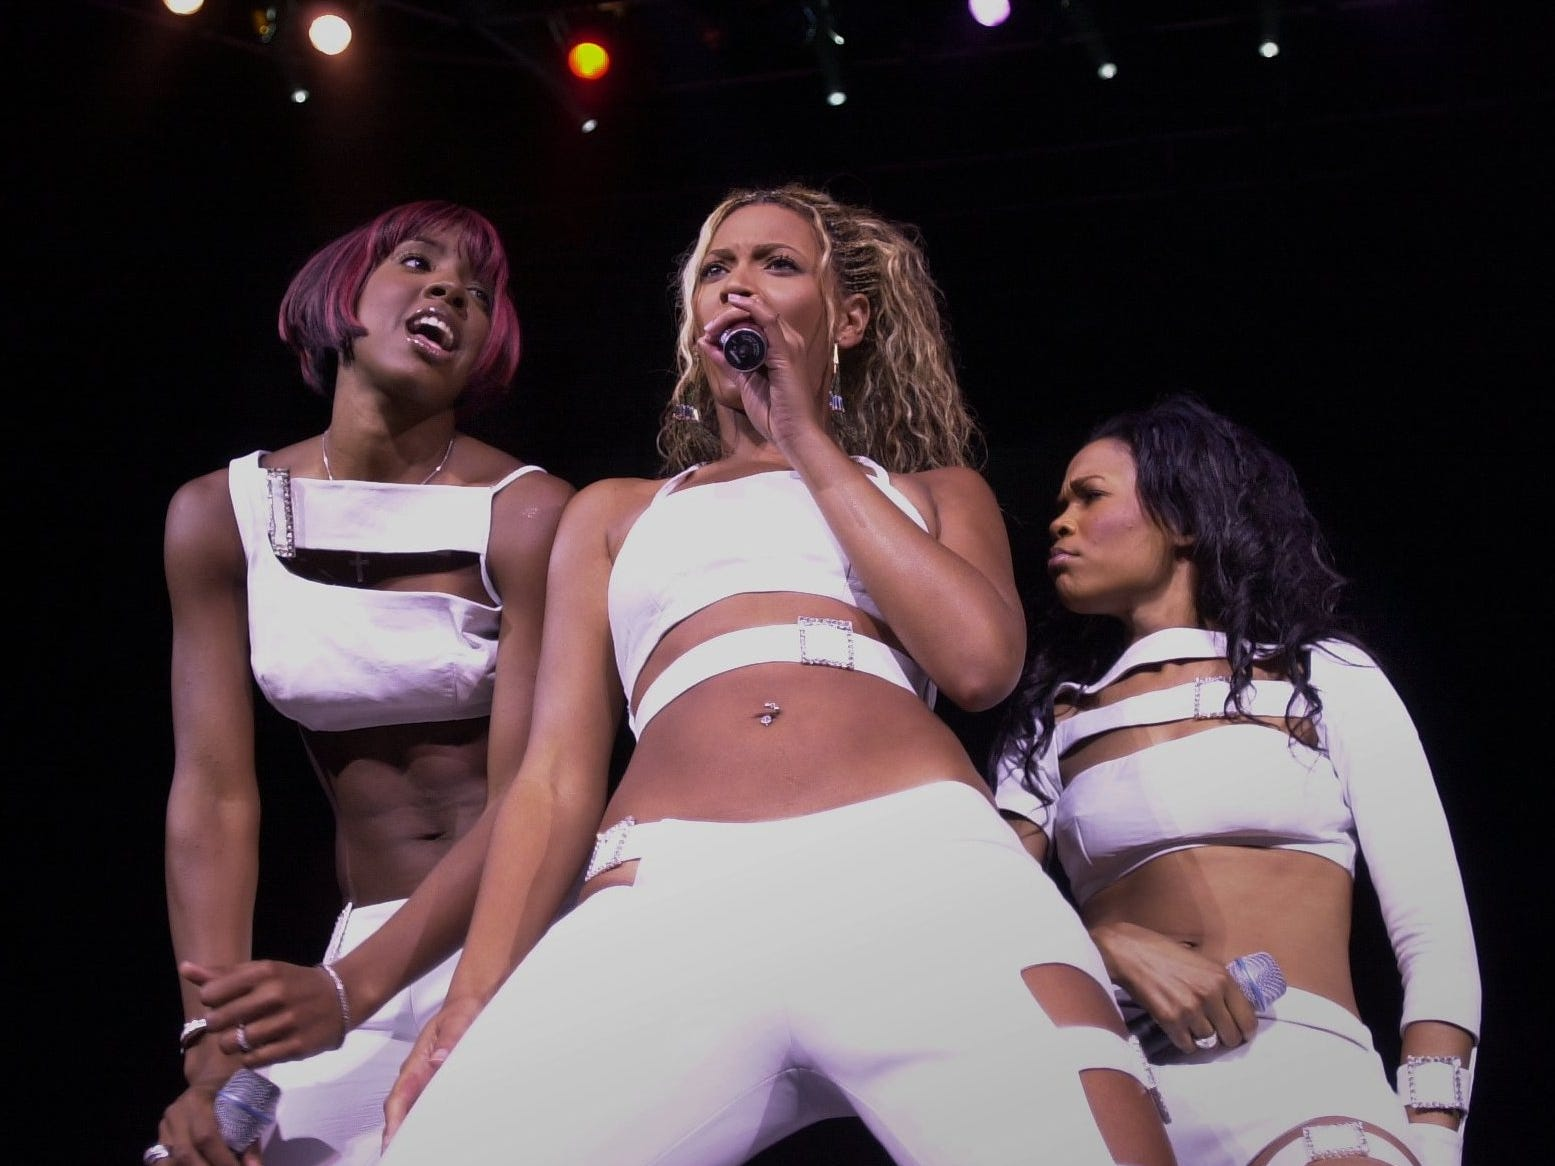 Destiny's Child, Kelly Rowland (left), Beyonce Knowles and Michelle Williams perform at the Marcus Amphitheater on July 2, 2001, the group's last Milwaukee concert. Beyonce has yet to perform in Milwaukee as a solo artist.